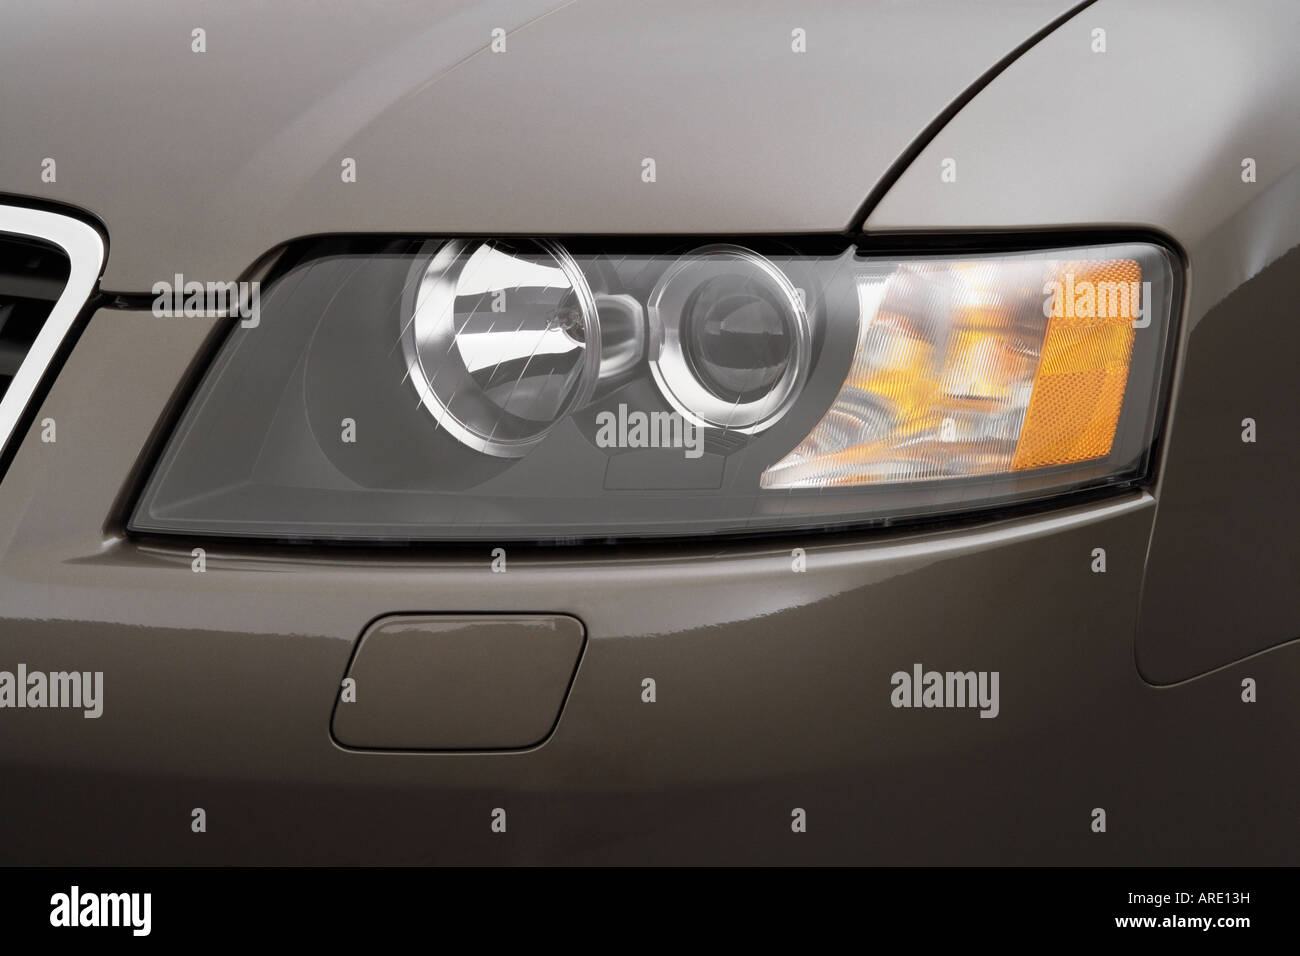 Audi A Cabriolet T In Beige Headlight Stock Photo - 2006 audi a4 headlights